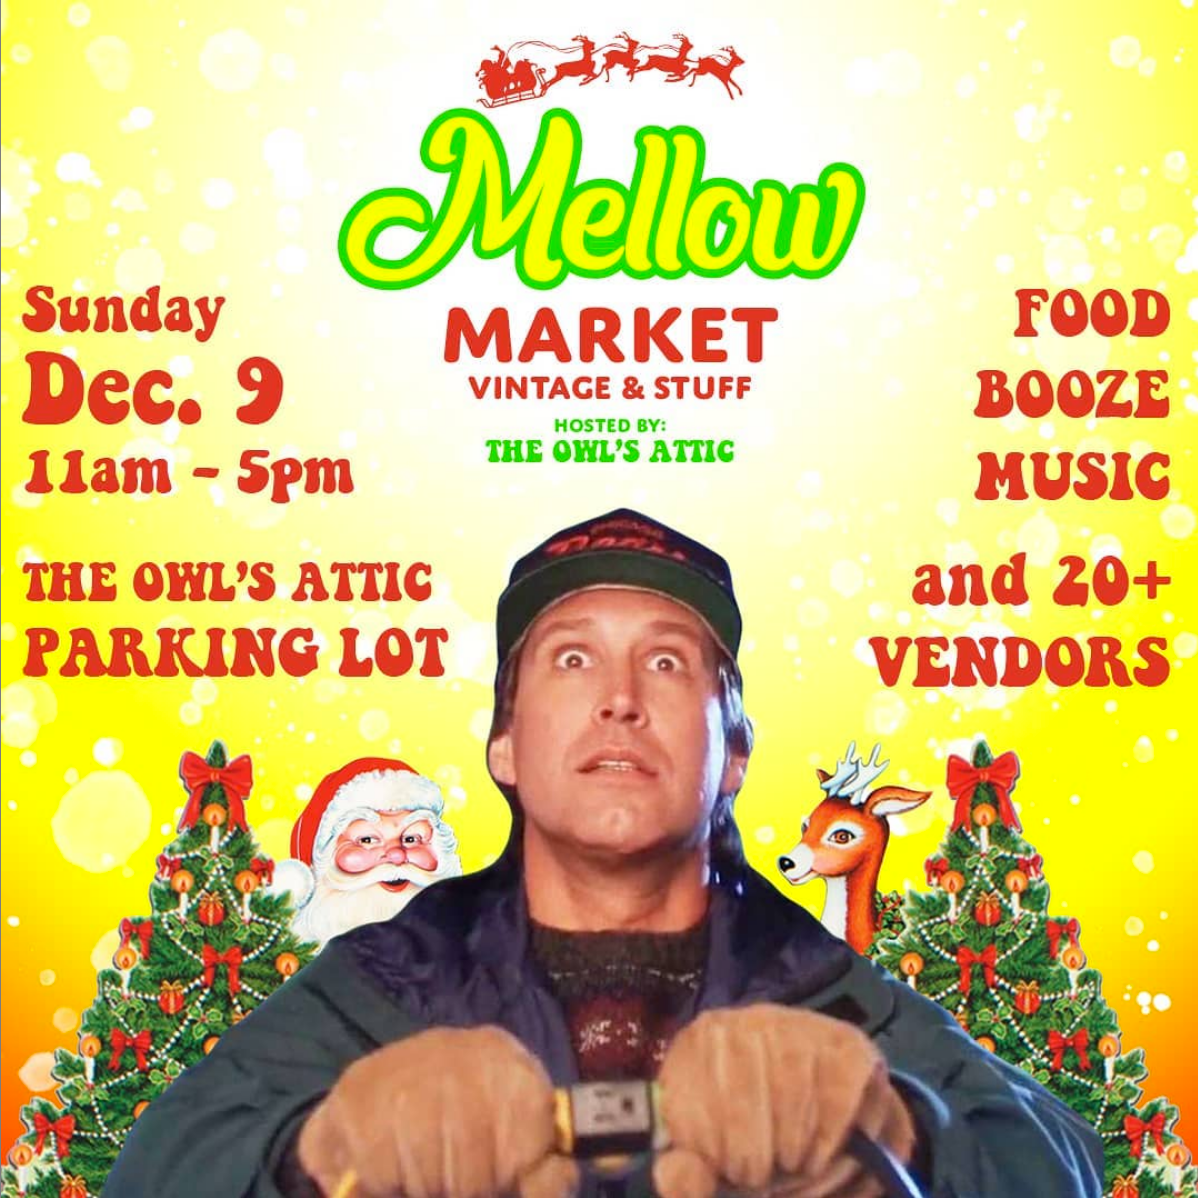 Mellow Market Holiday Edition with The Owl's Attic